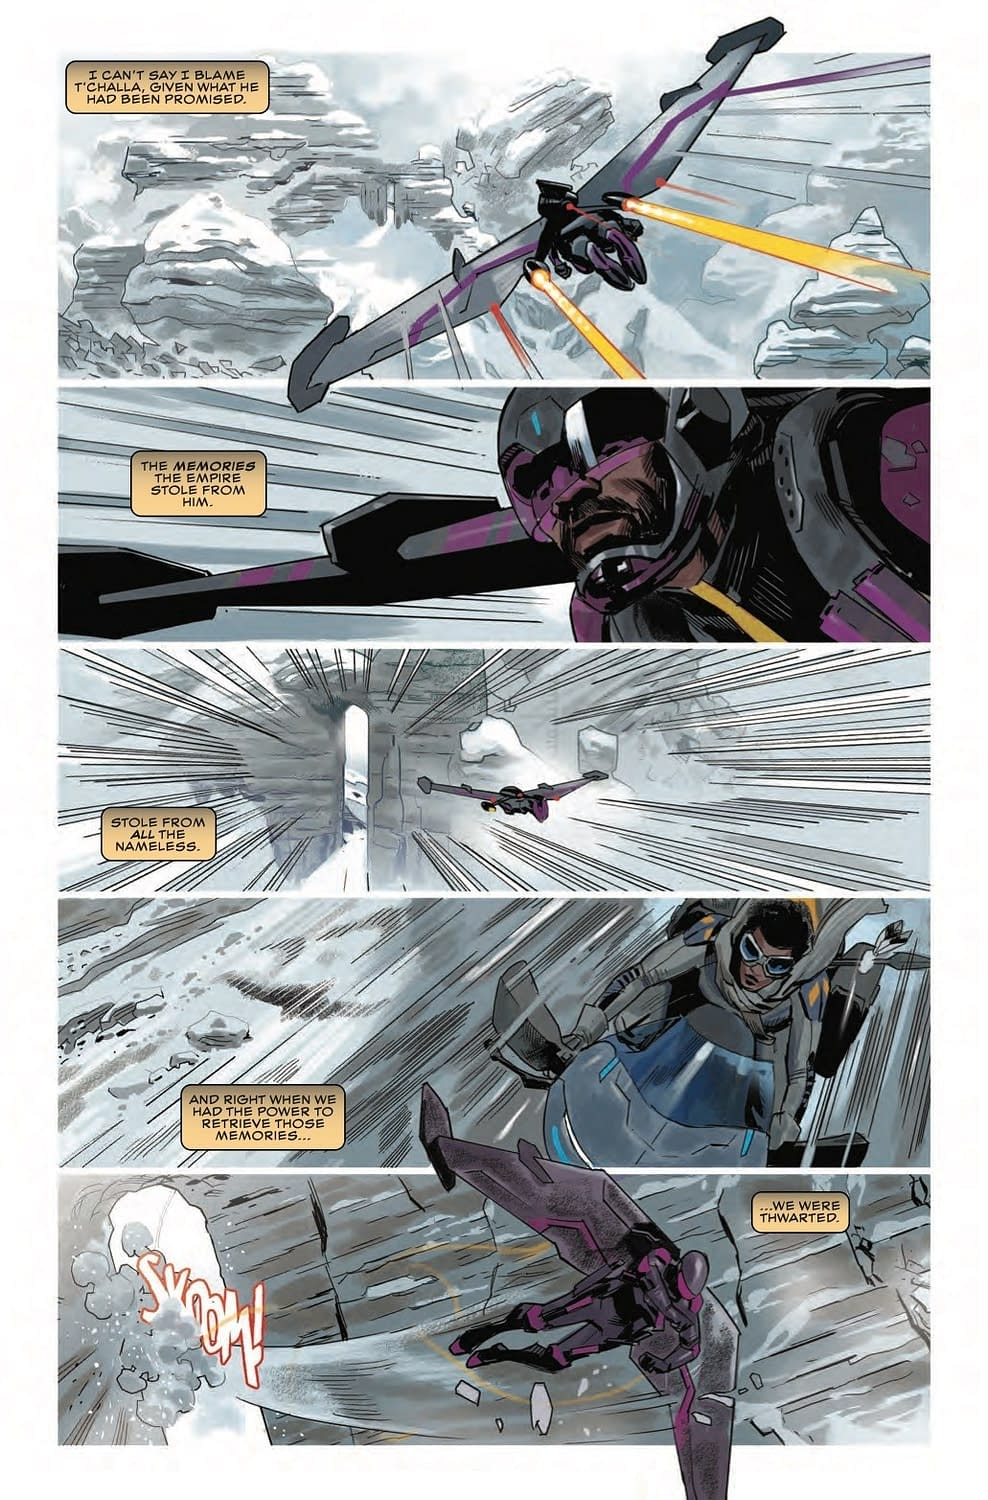 Jogging the Black Panther's Memory in Preview of Next Week's Black Panther #5